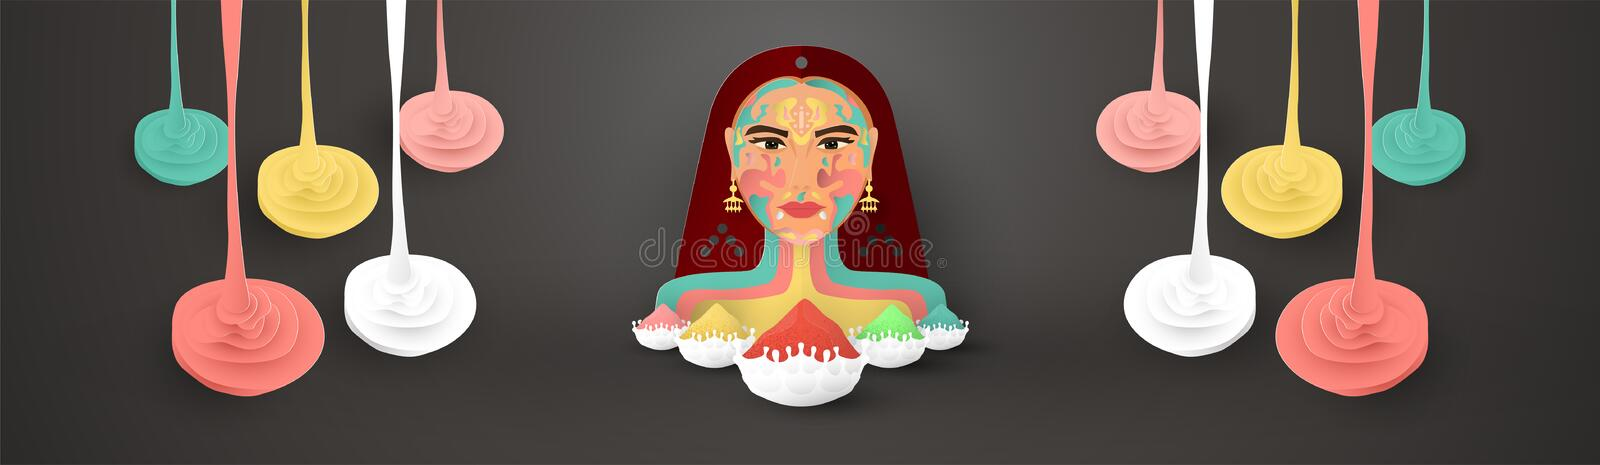 Happy Holi, Festival of Colors. Template element design for template, banner, poster, greeting card. Vector illustration in paper stock illustration